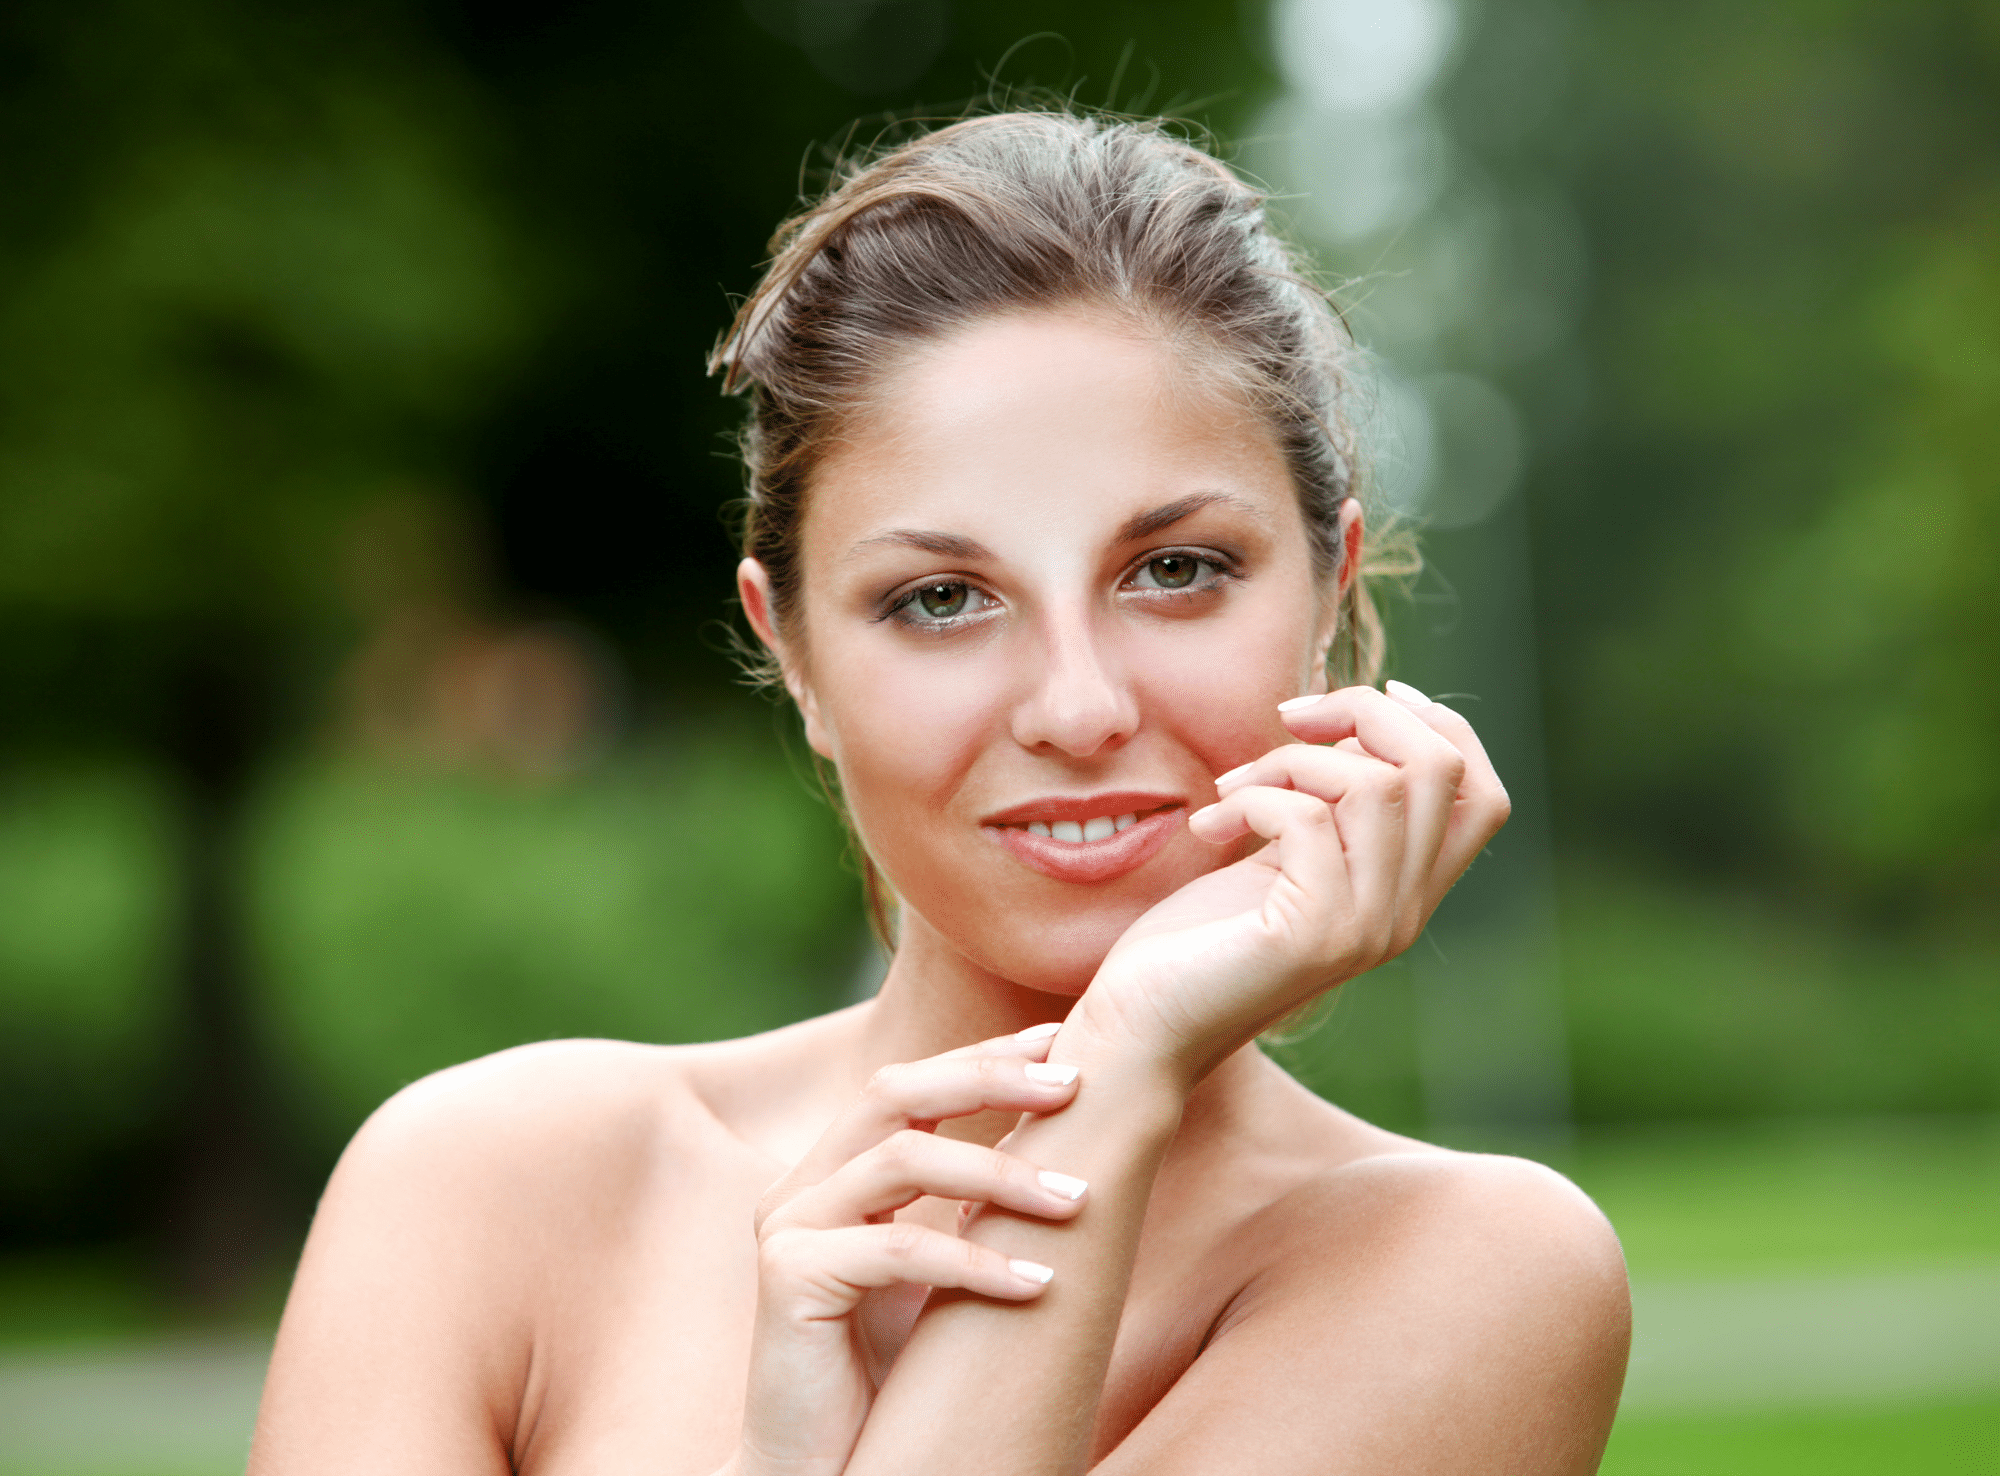 CBD Oil For Wrinkles – Is It Good For Anti-Aging?